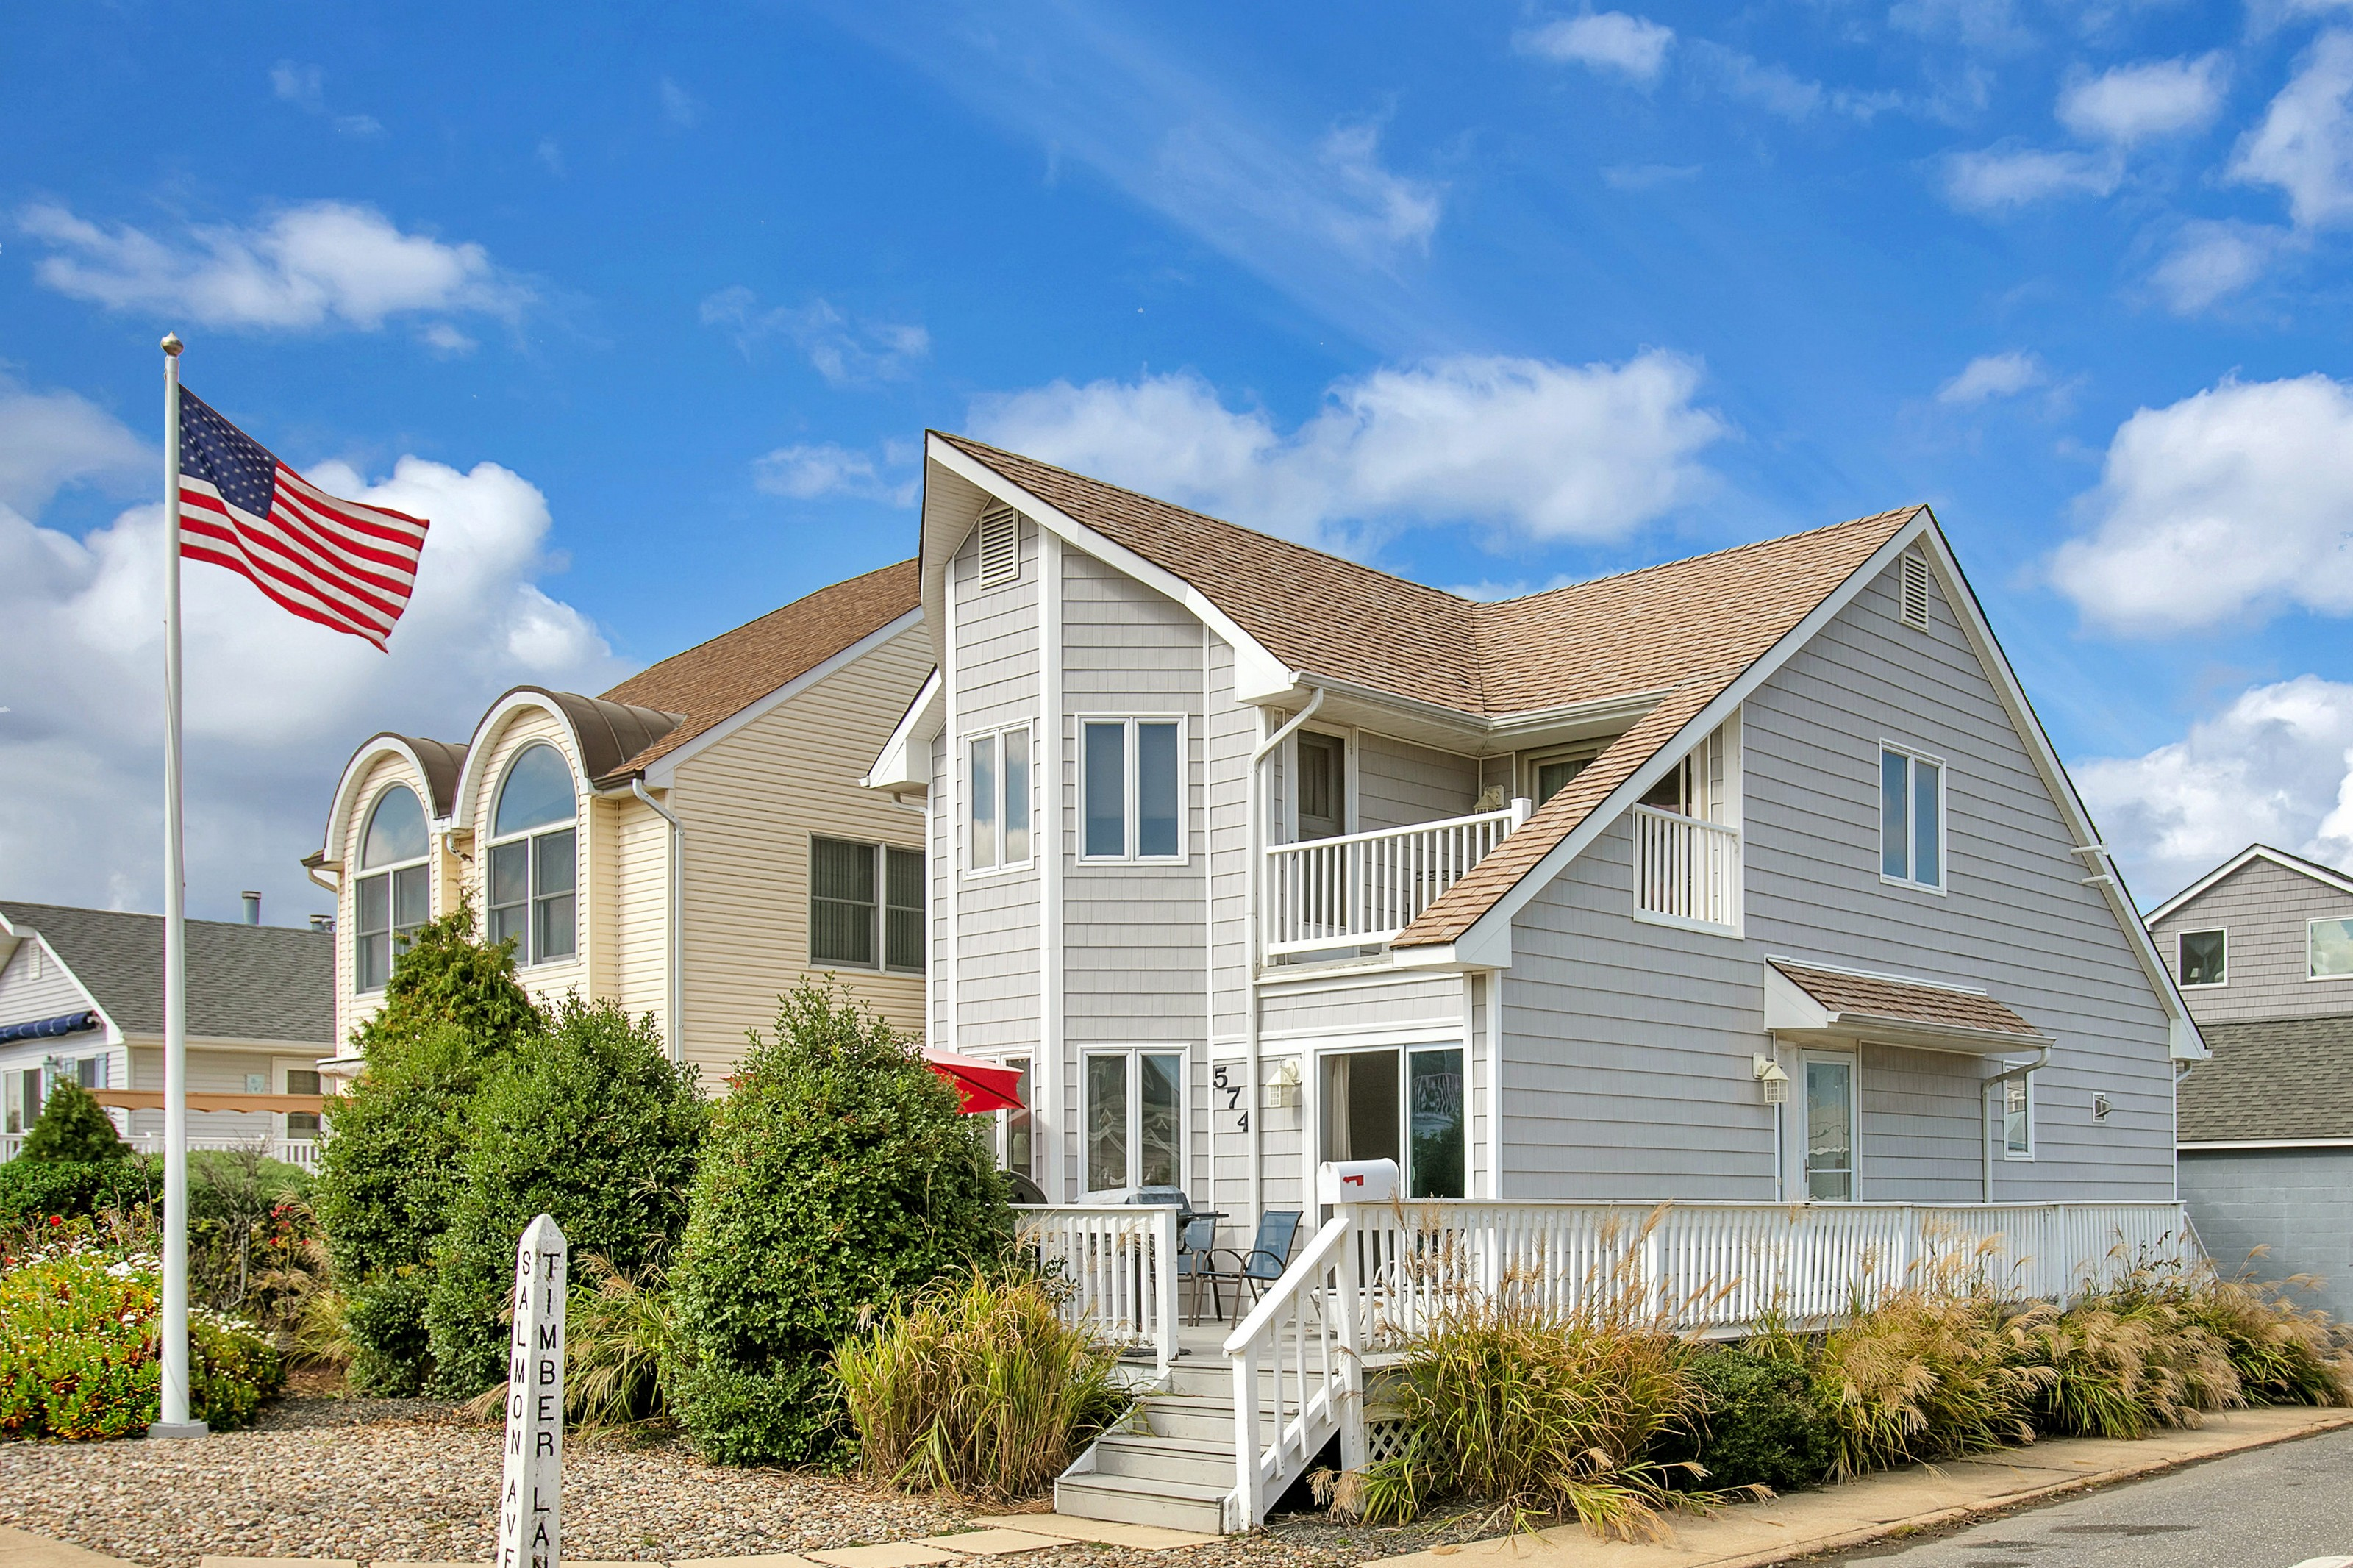 Single Family Home for Sale at Beach Home 574 Salmon Ave Manasquan, New Jersey 08736 United States